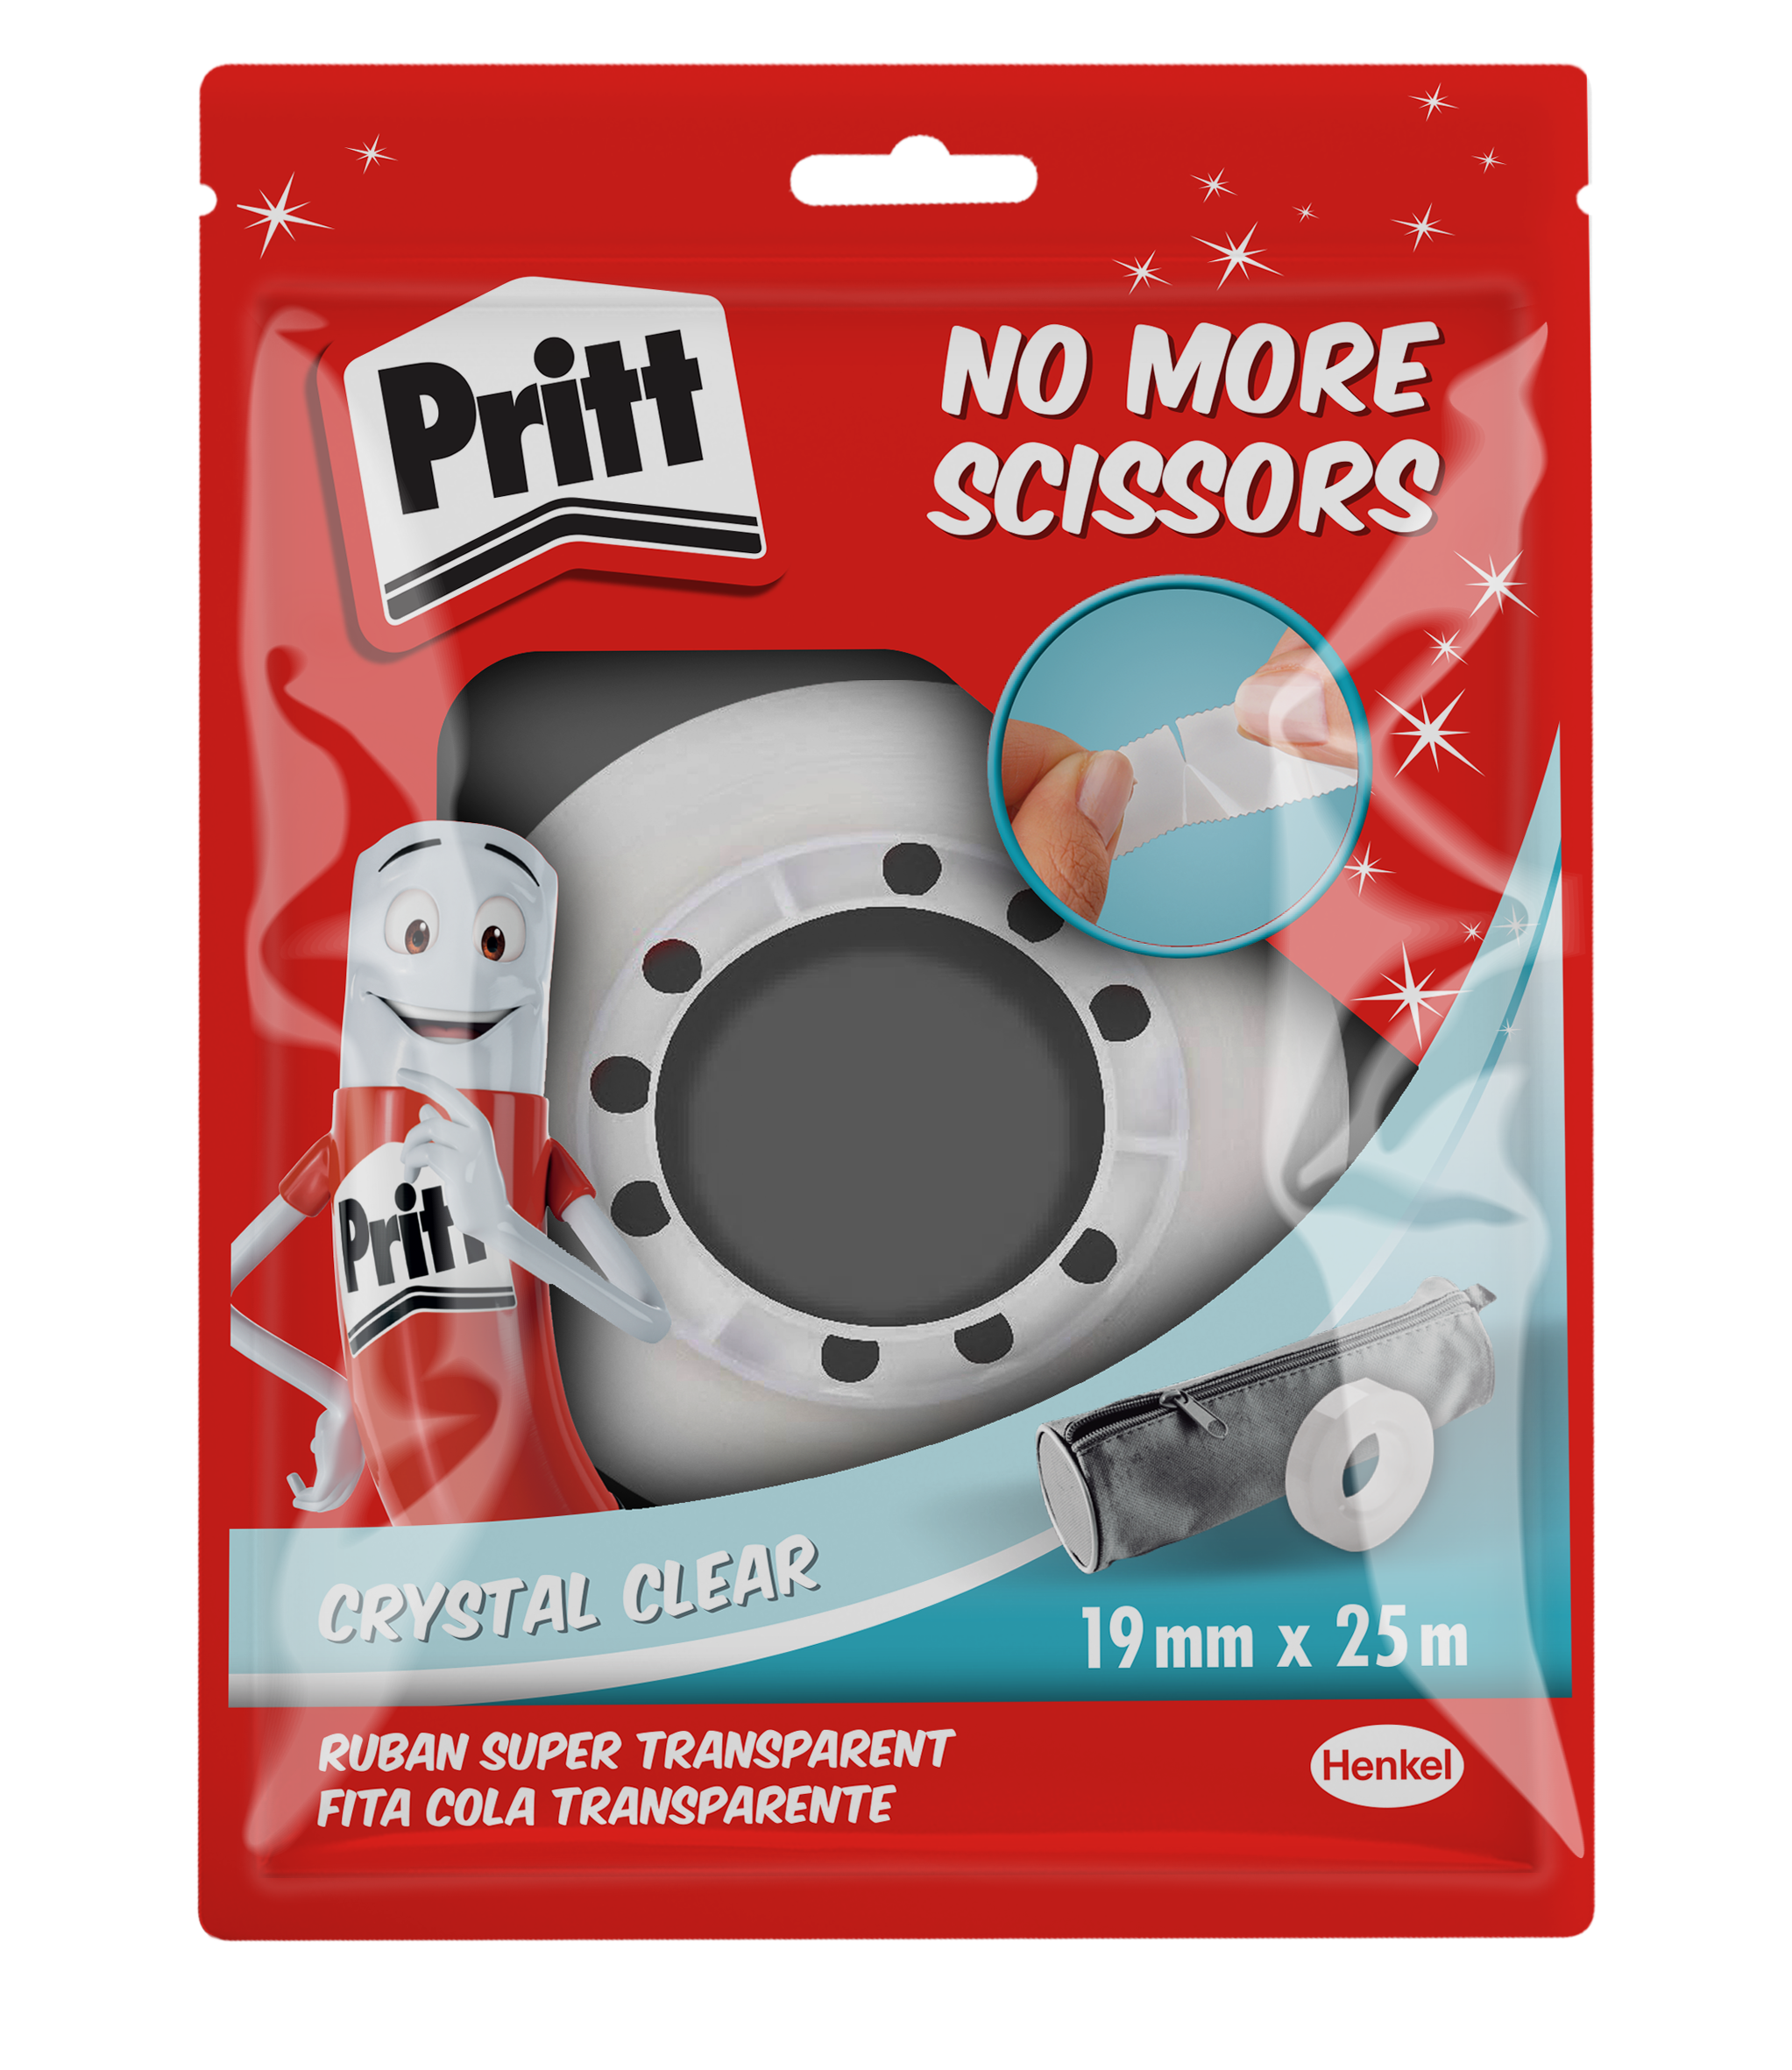 PRITT NO MORE SCISSORS